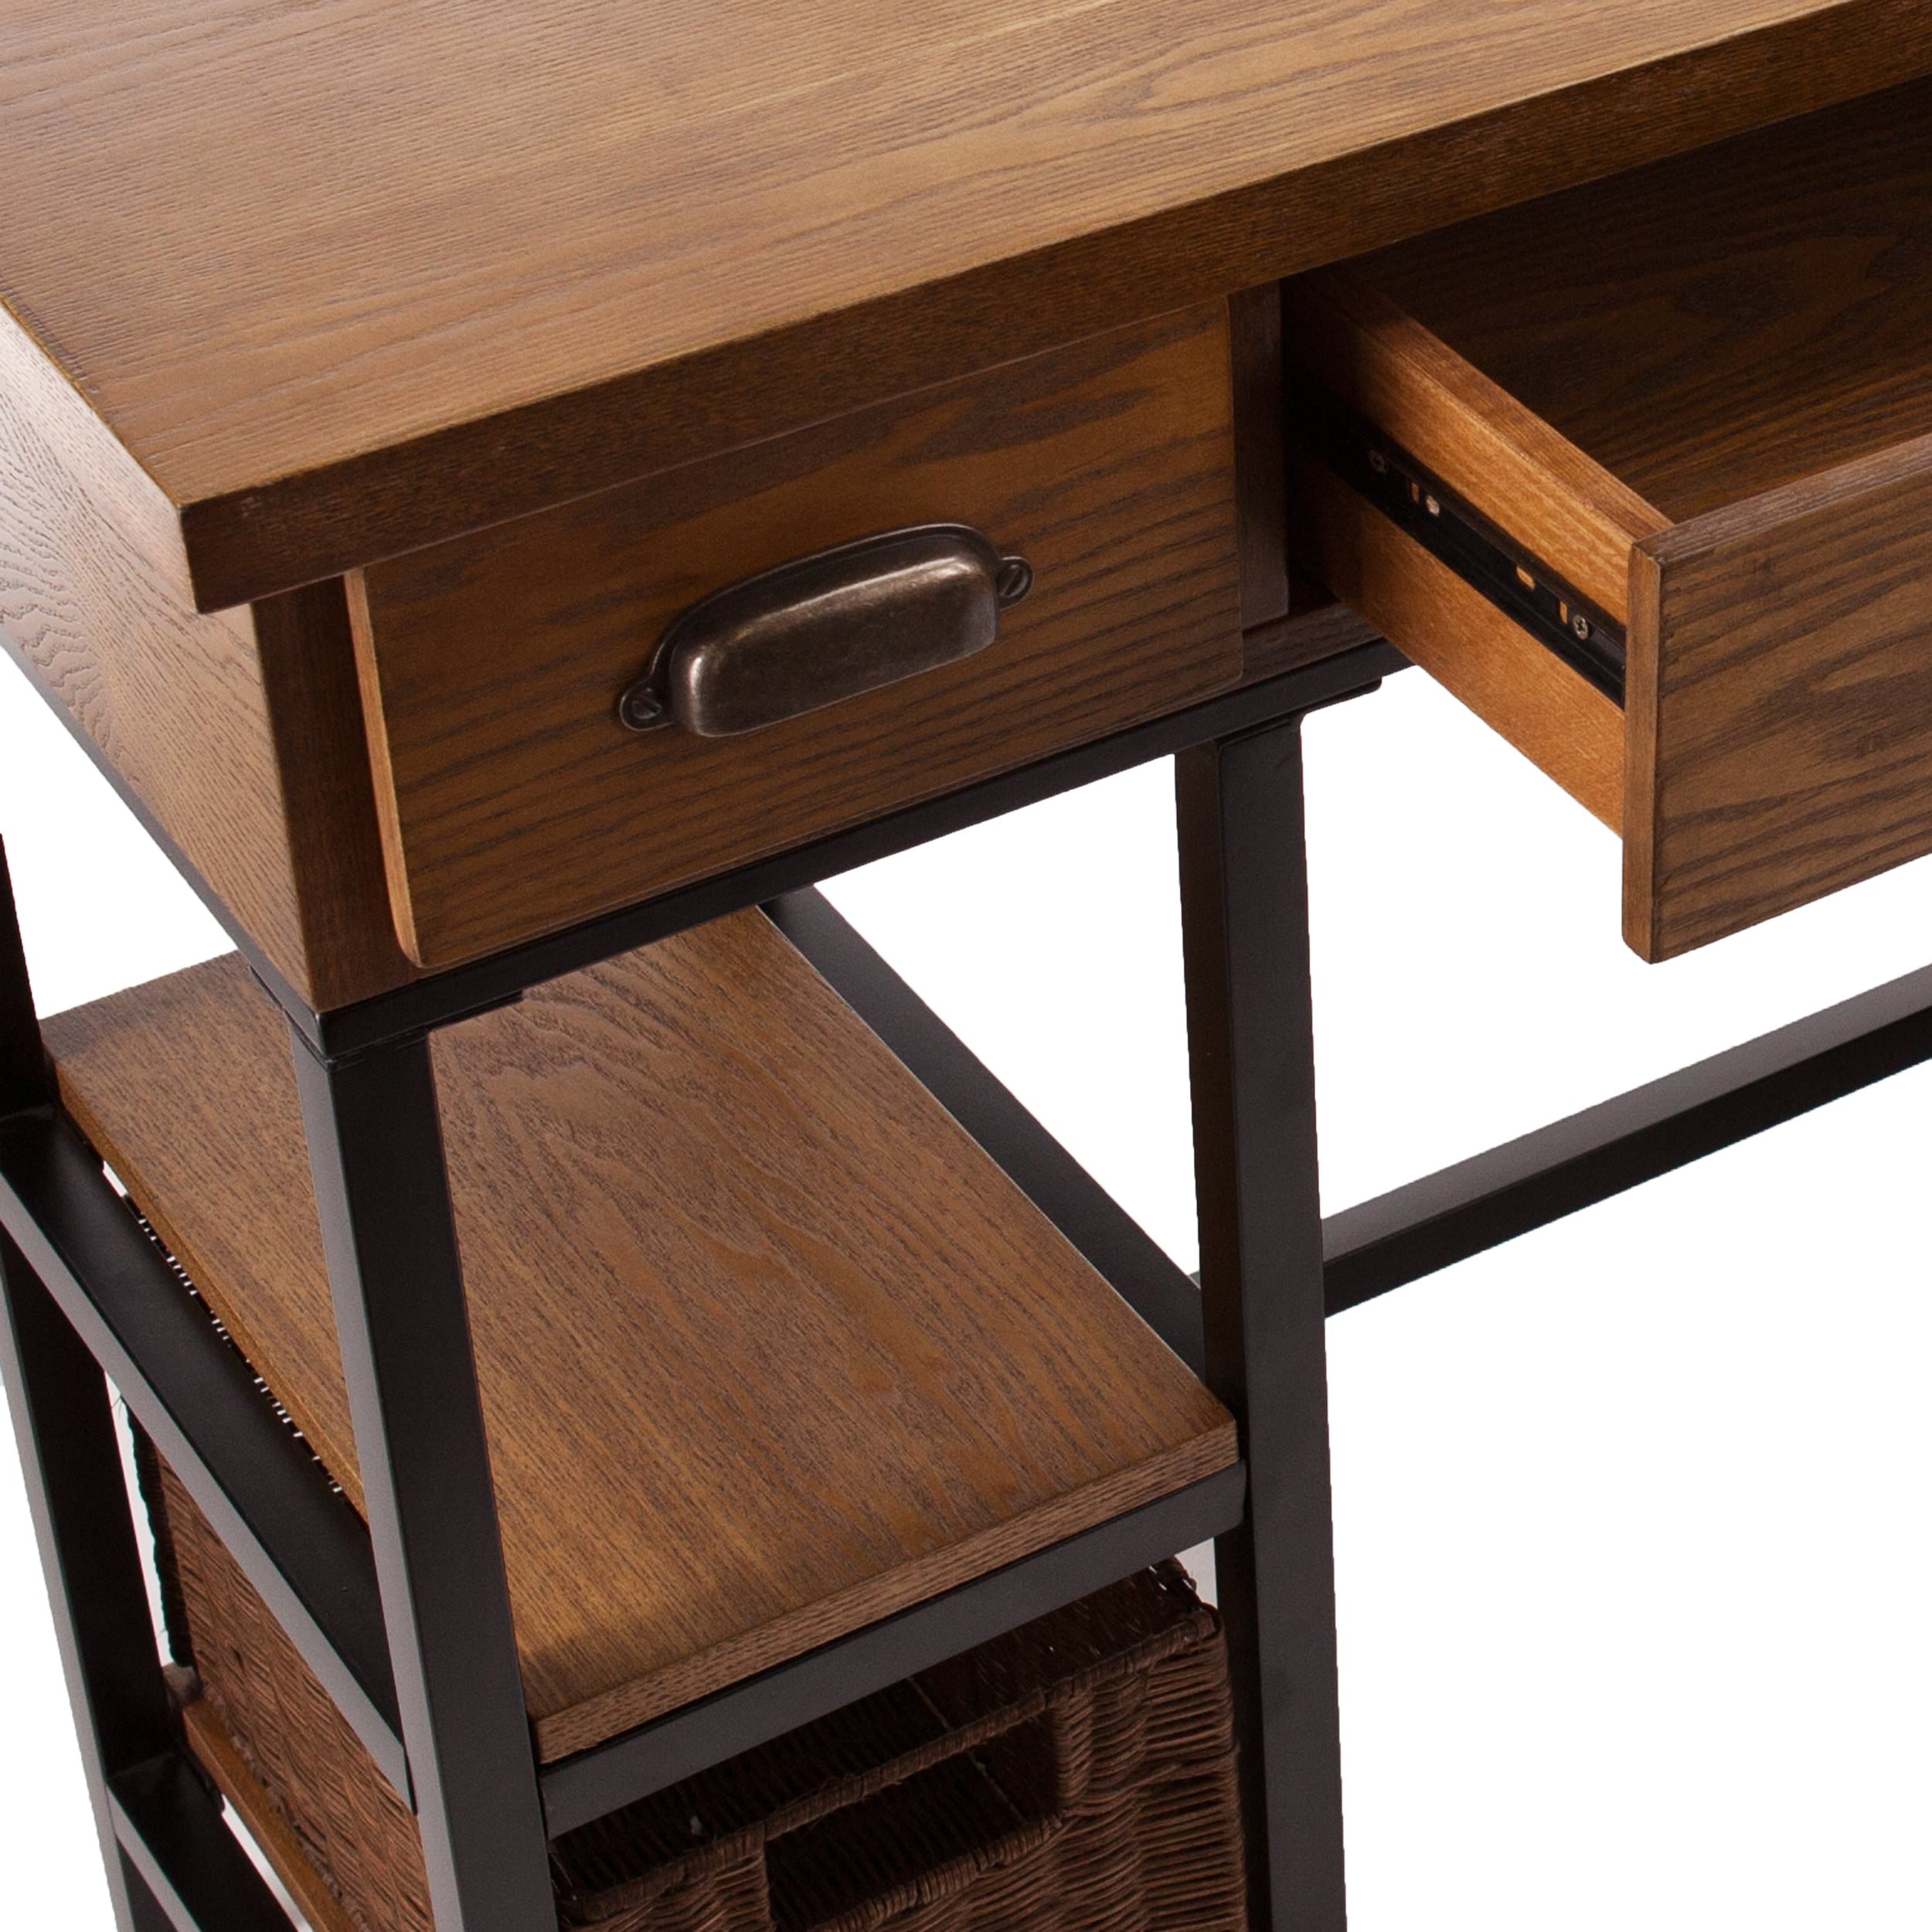 furniture bases drawers desk as black of shaped main wooden room l study alluring idea brown the floor with wood on and magnetizing